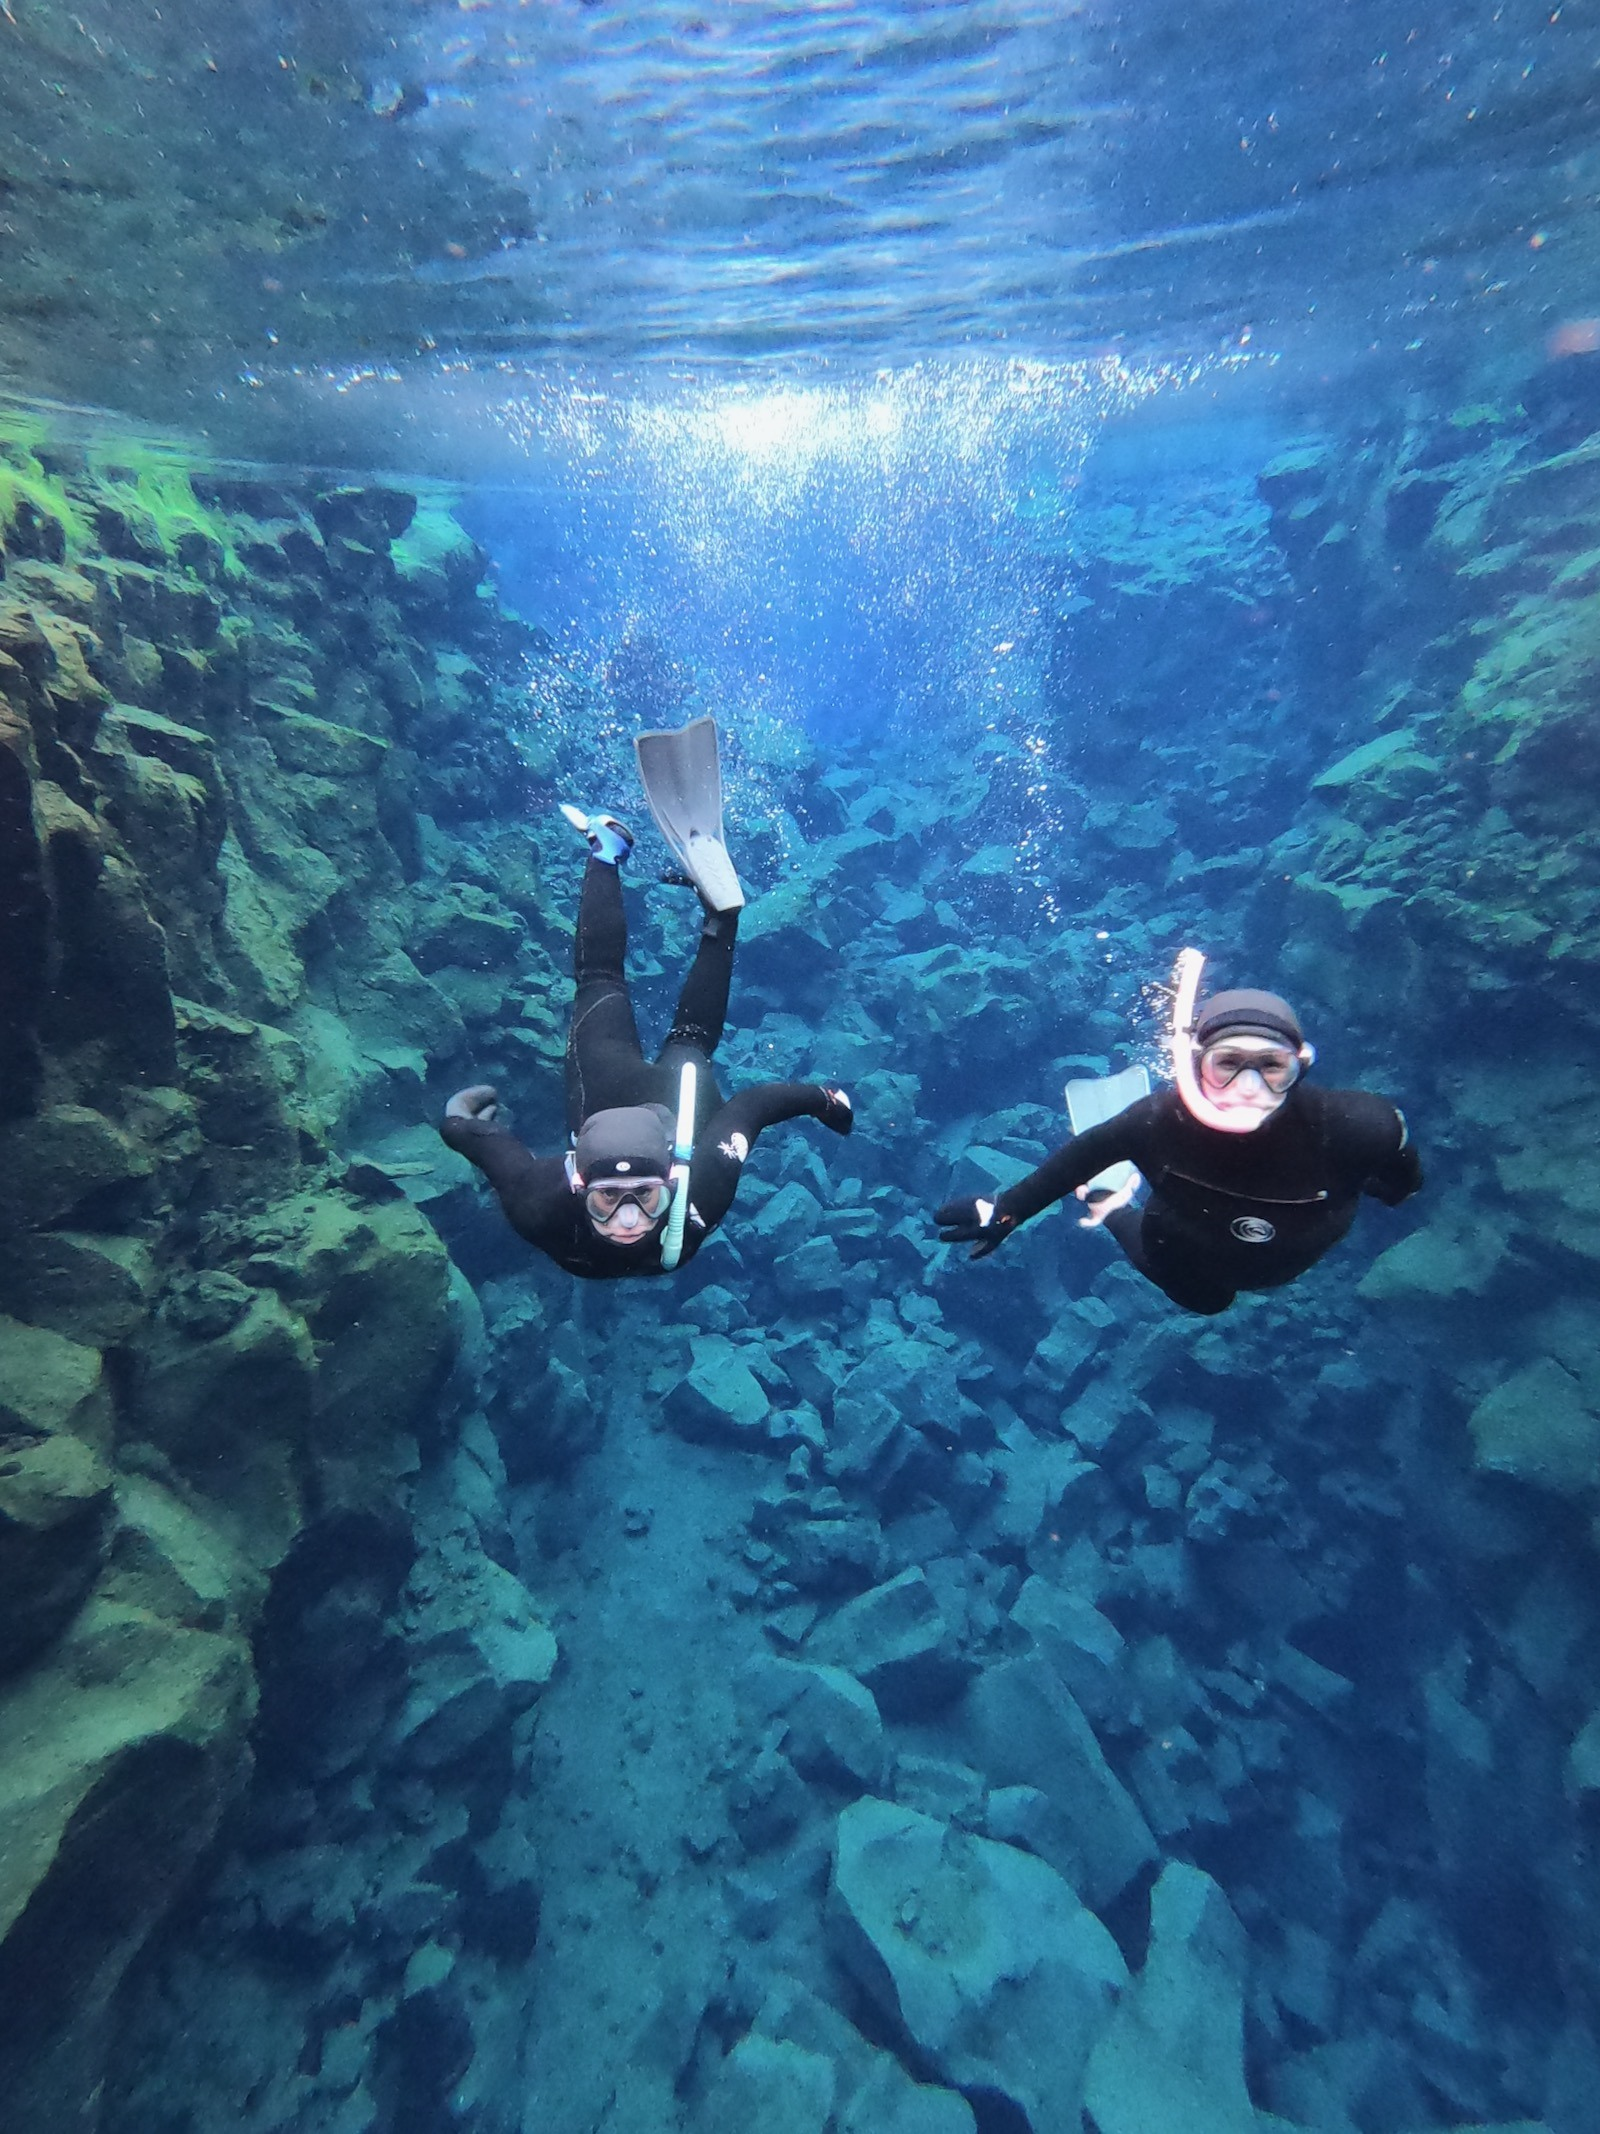 Snorkeling in the Silfra Fissure.